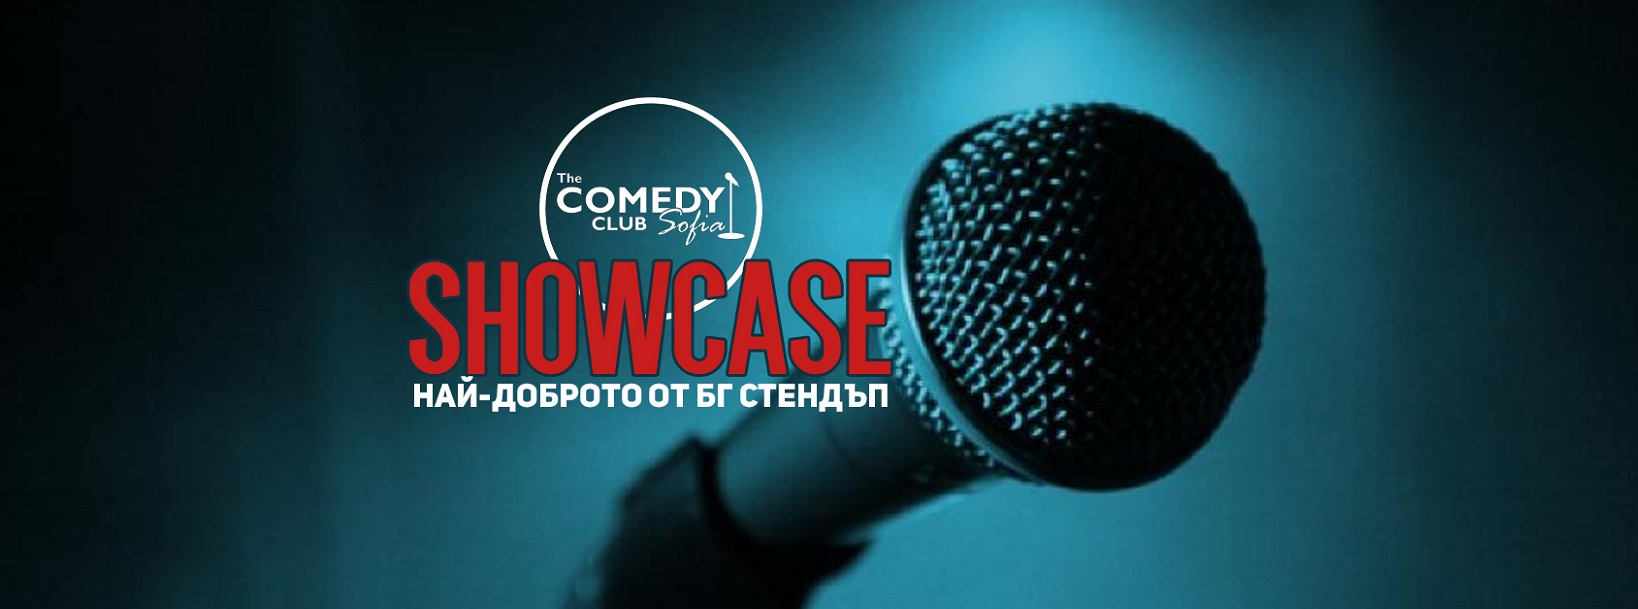 stand up comedy bulgaria showcase